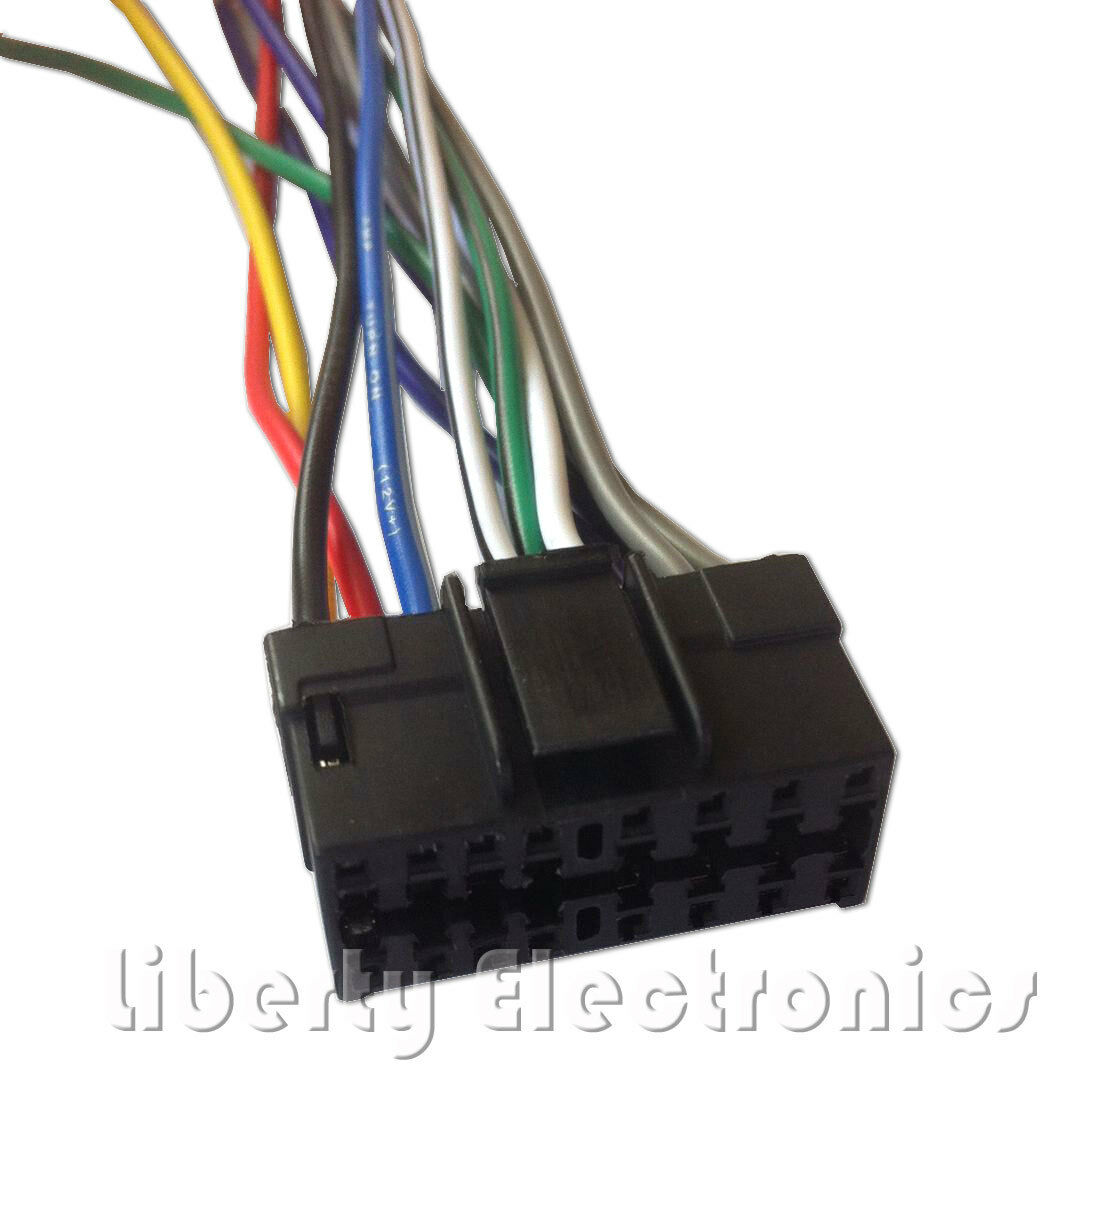 NEW WIRE HARNESS for PIONEER DEH P20 DEH P200?resize=665%2C724&ssl=1 diagrams 413300 pioneer deh p2000 wiring diagram pioneer deh pioneer deh-p20 wiring diagram at bayanpartner.co